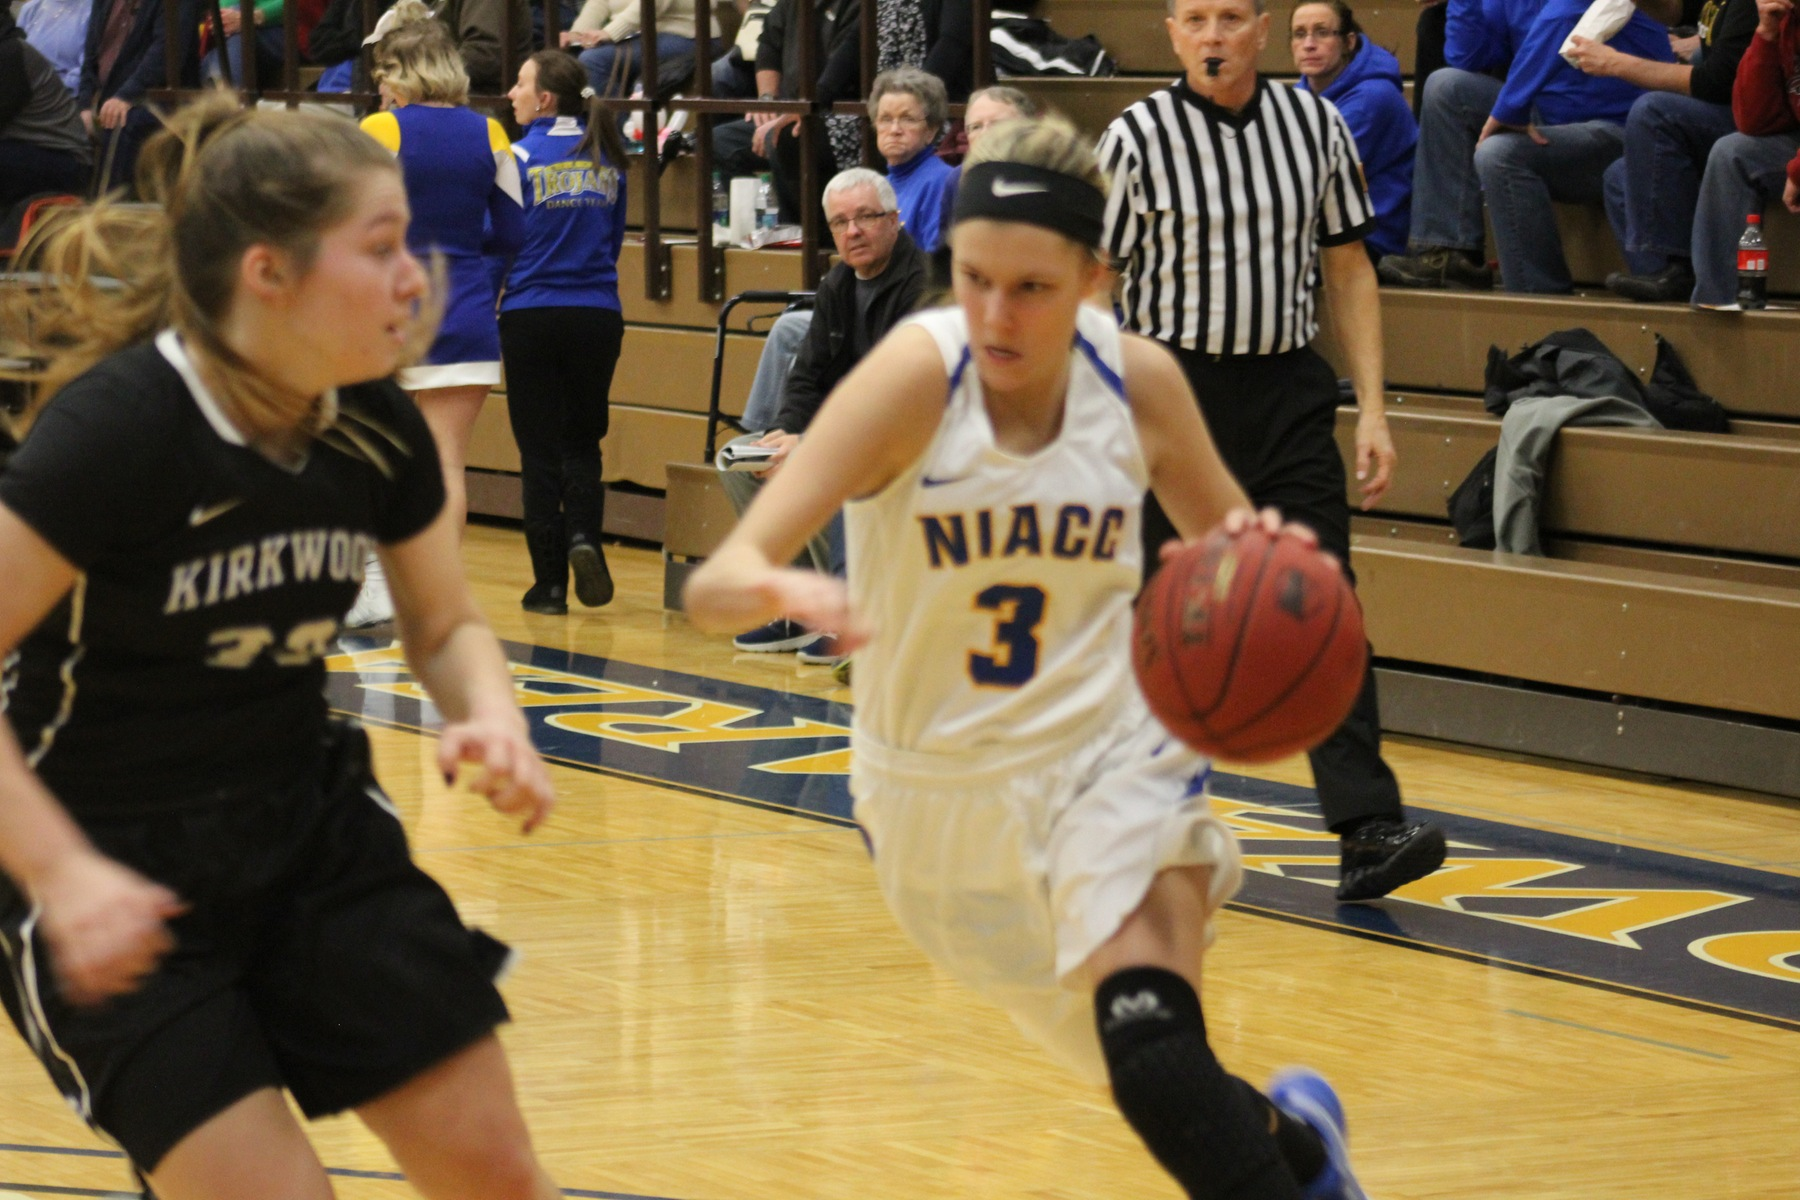 NIACC's Taylor Laabs drives to the basket during a game last season against Kirkwood.